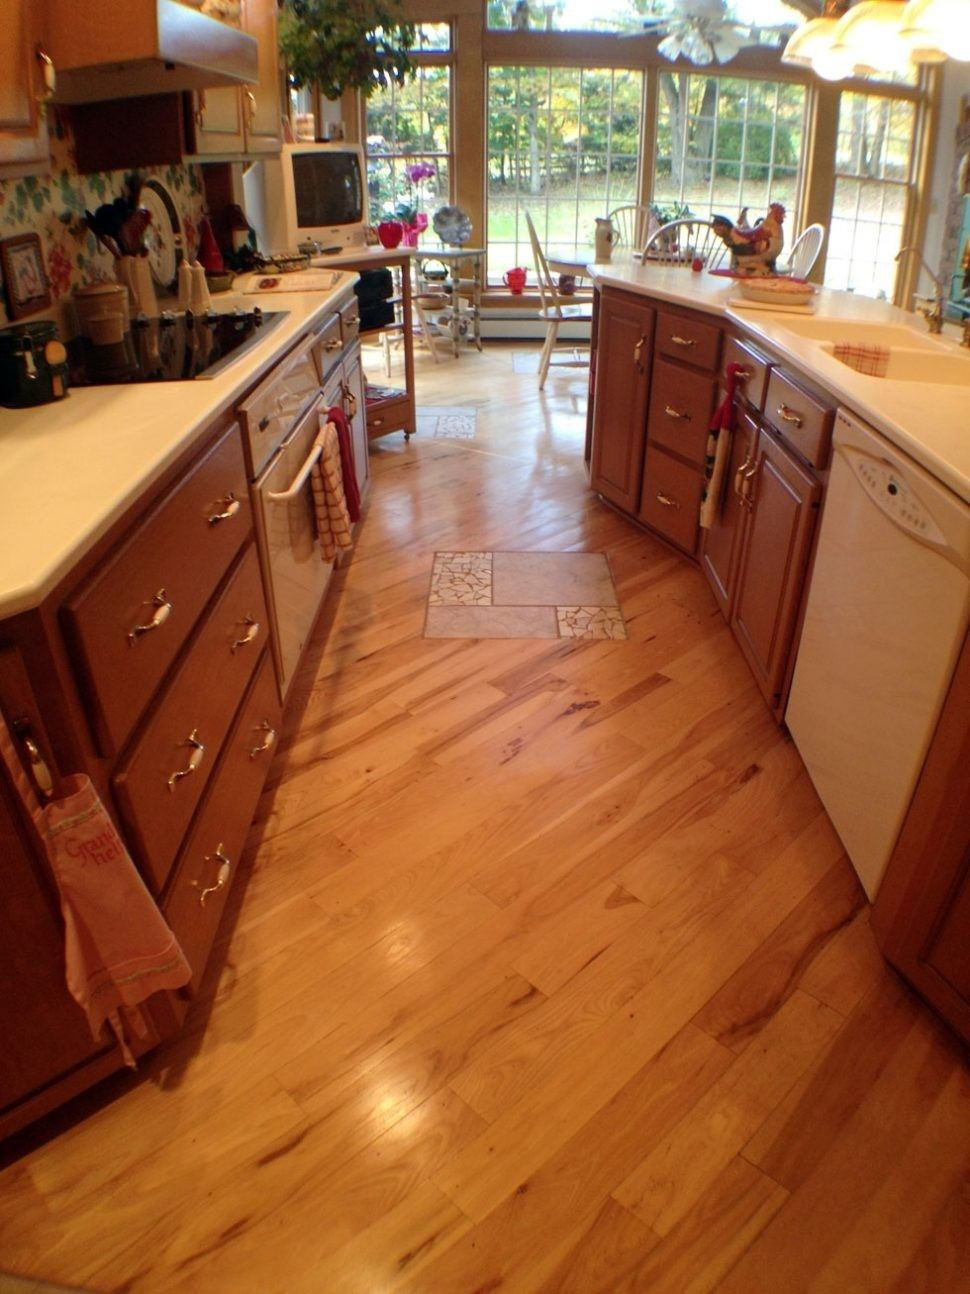 hardwood floor patterns pictures of 40 flooring installation cost per square foot concept with regard to hardwood flooring cost per sq ft fresh floor floor installod floors ideas of flooring installation cost